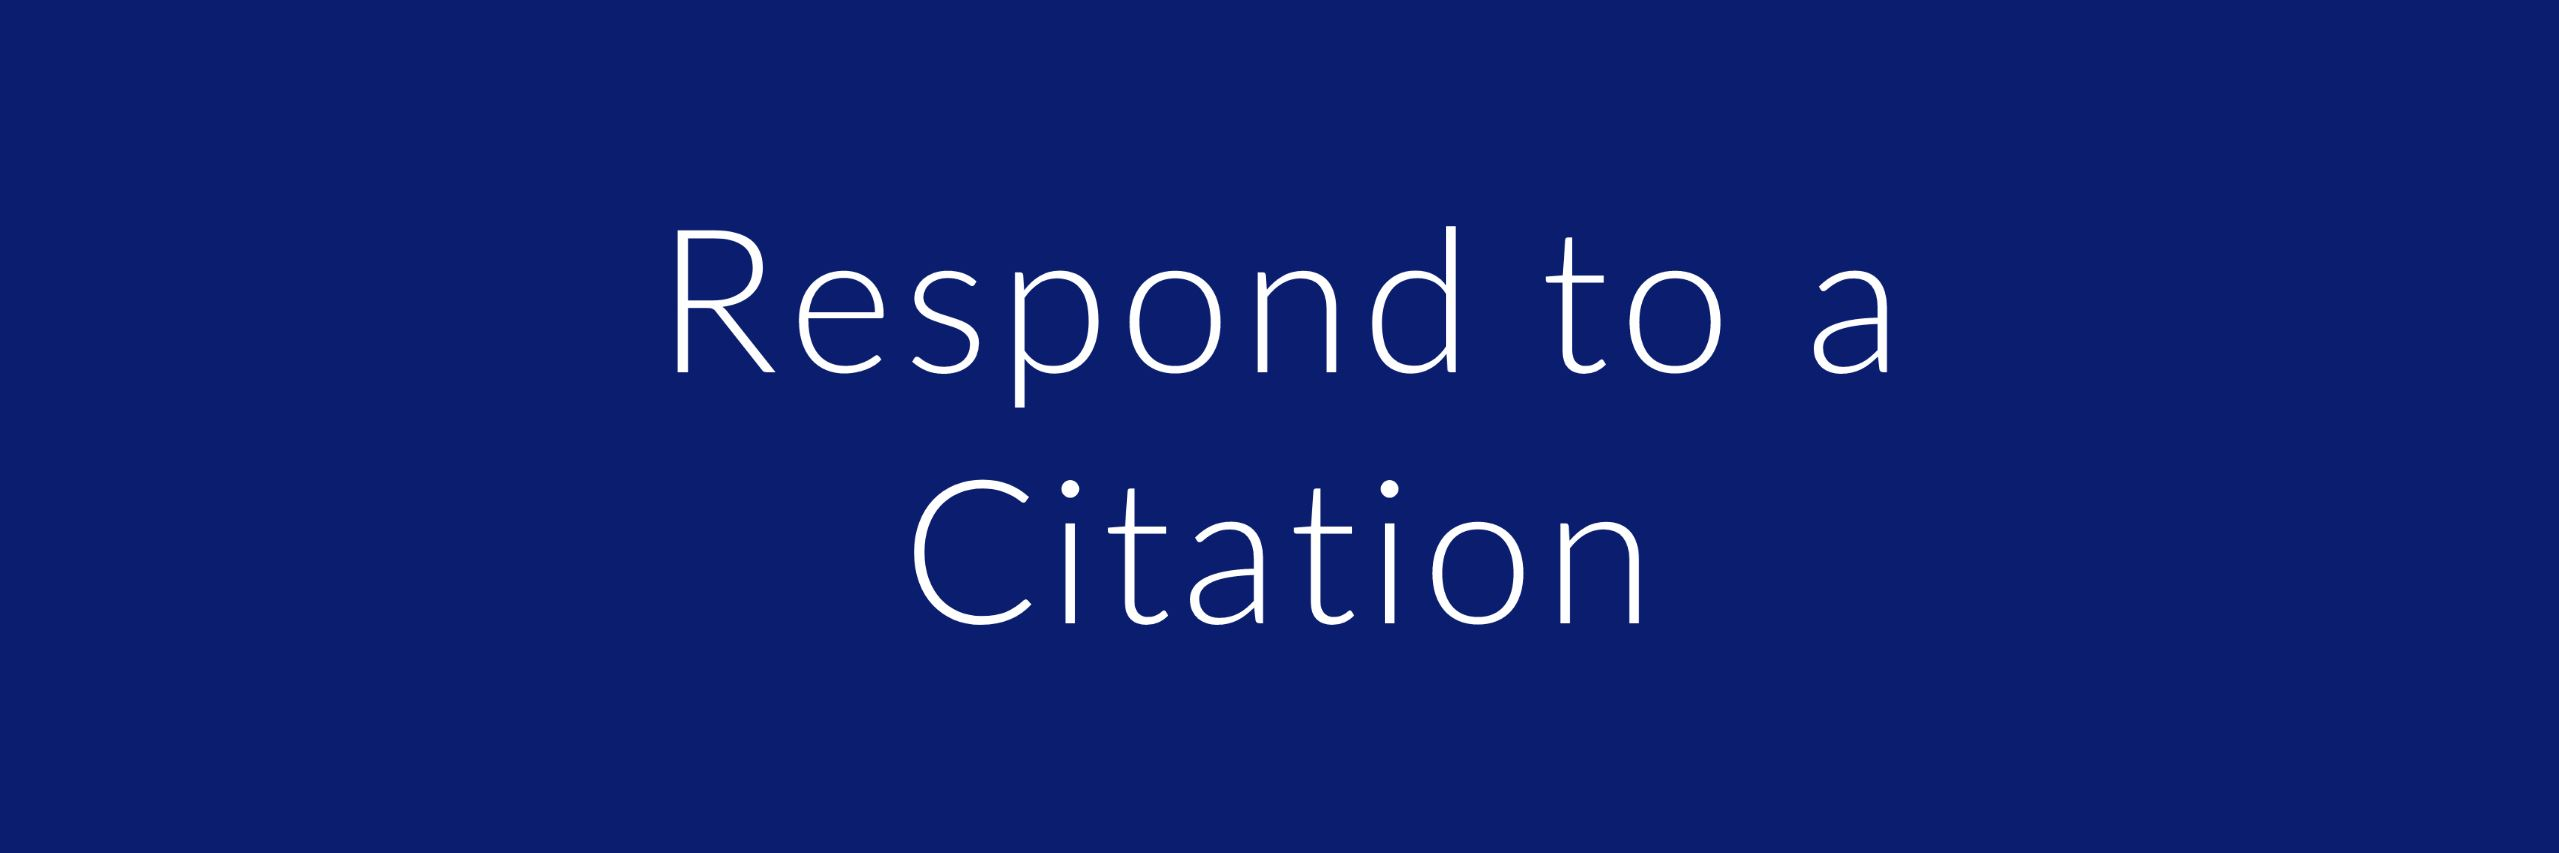 respond to a citation button